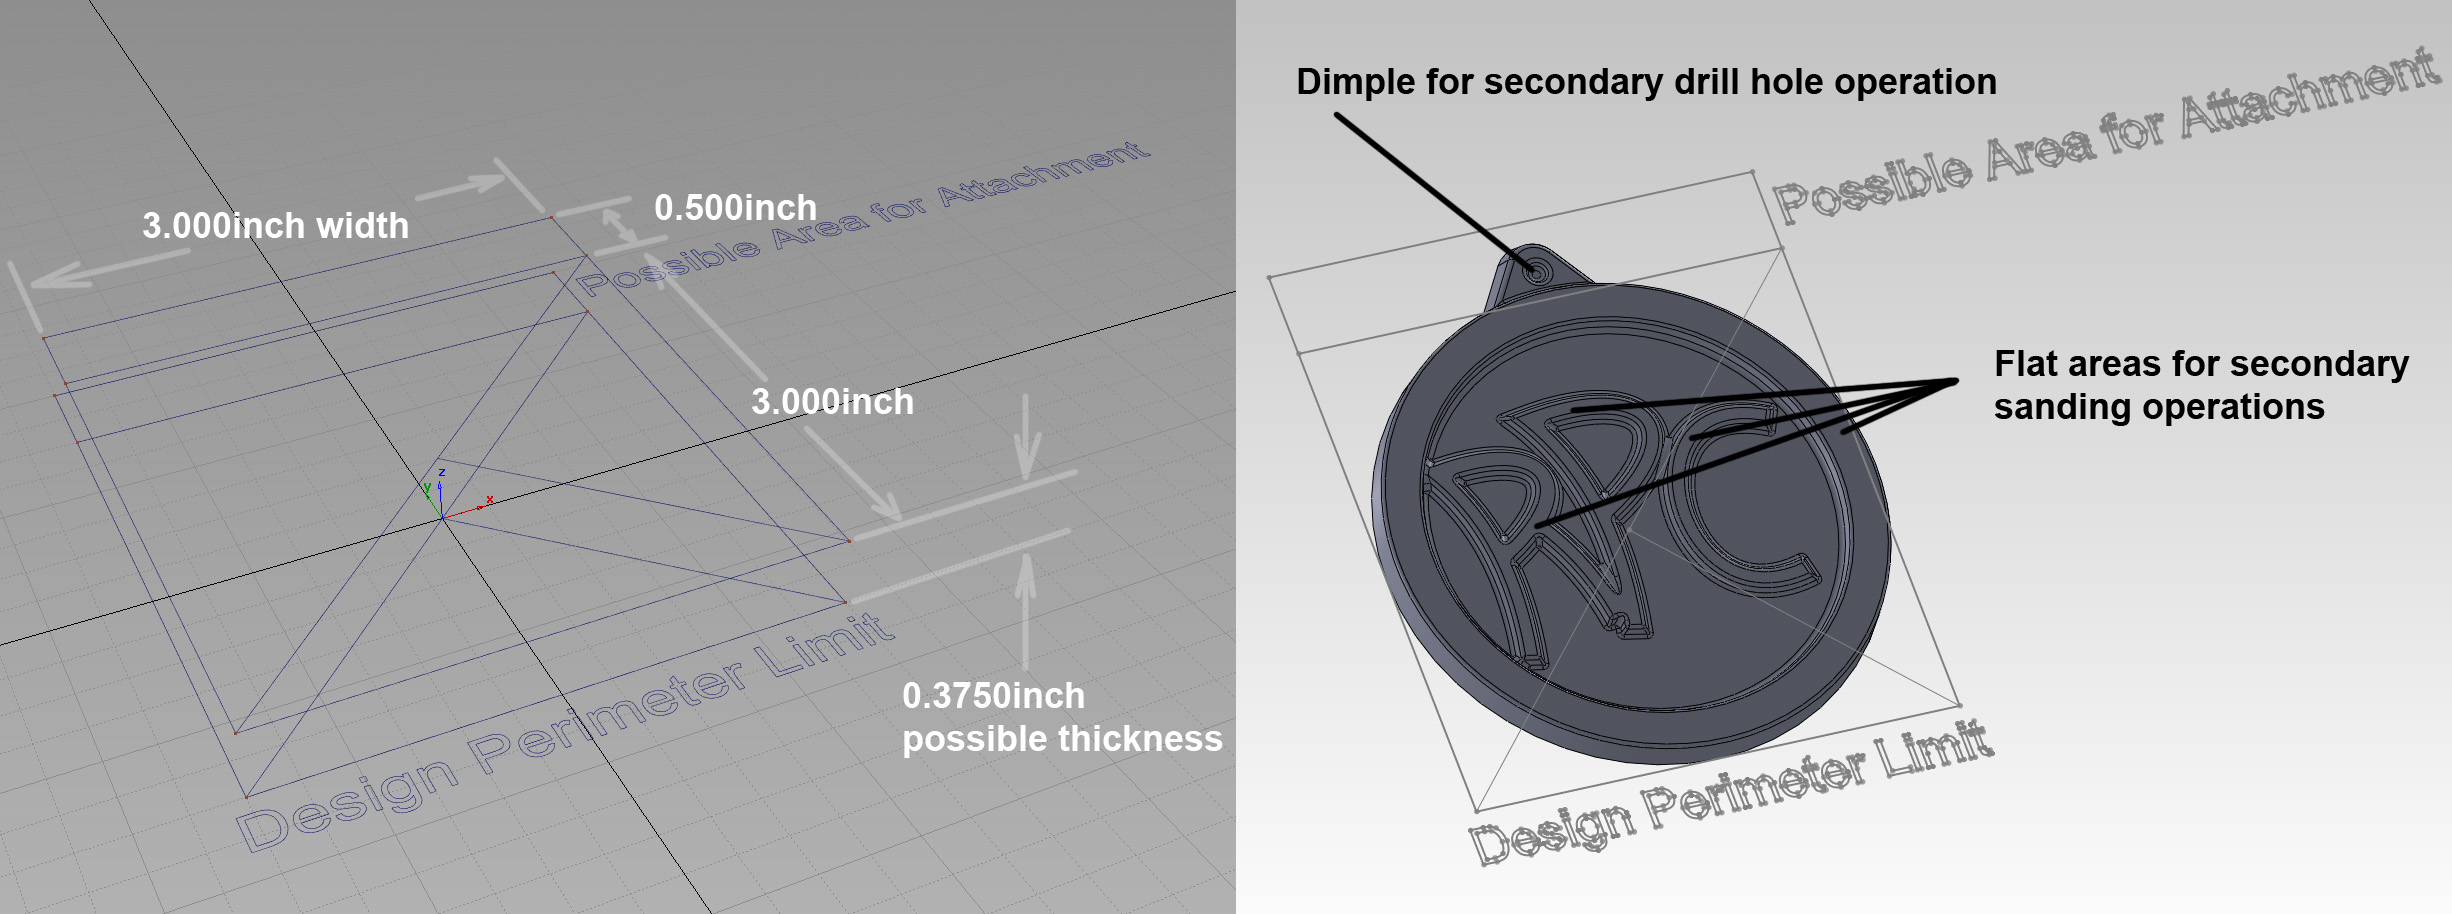 Save this IGES file into your Solidworks session to make sure the design is properly constructed properly.